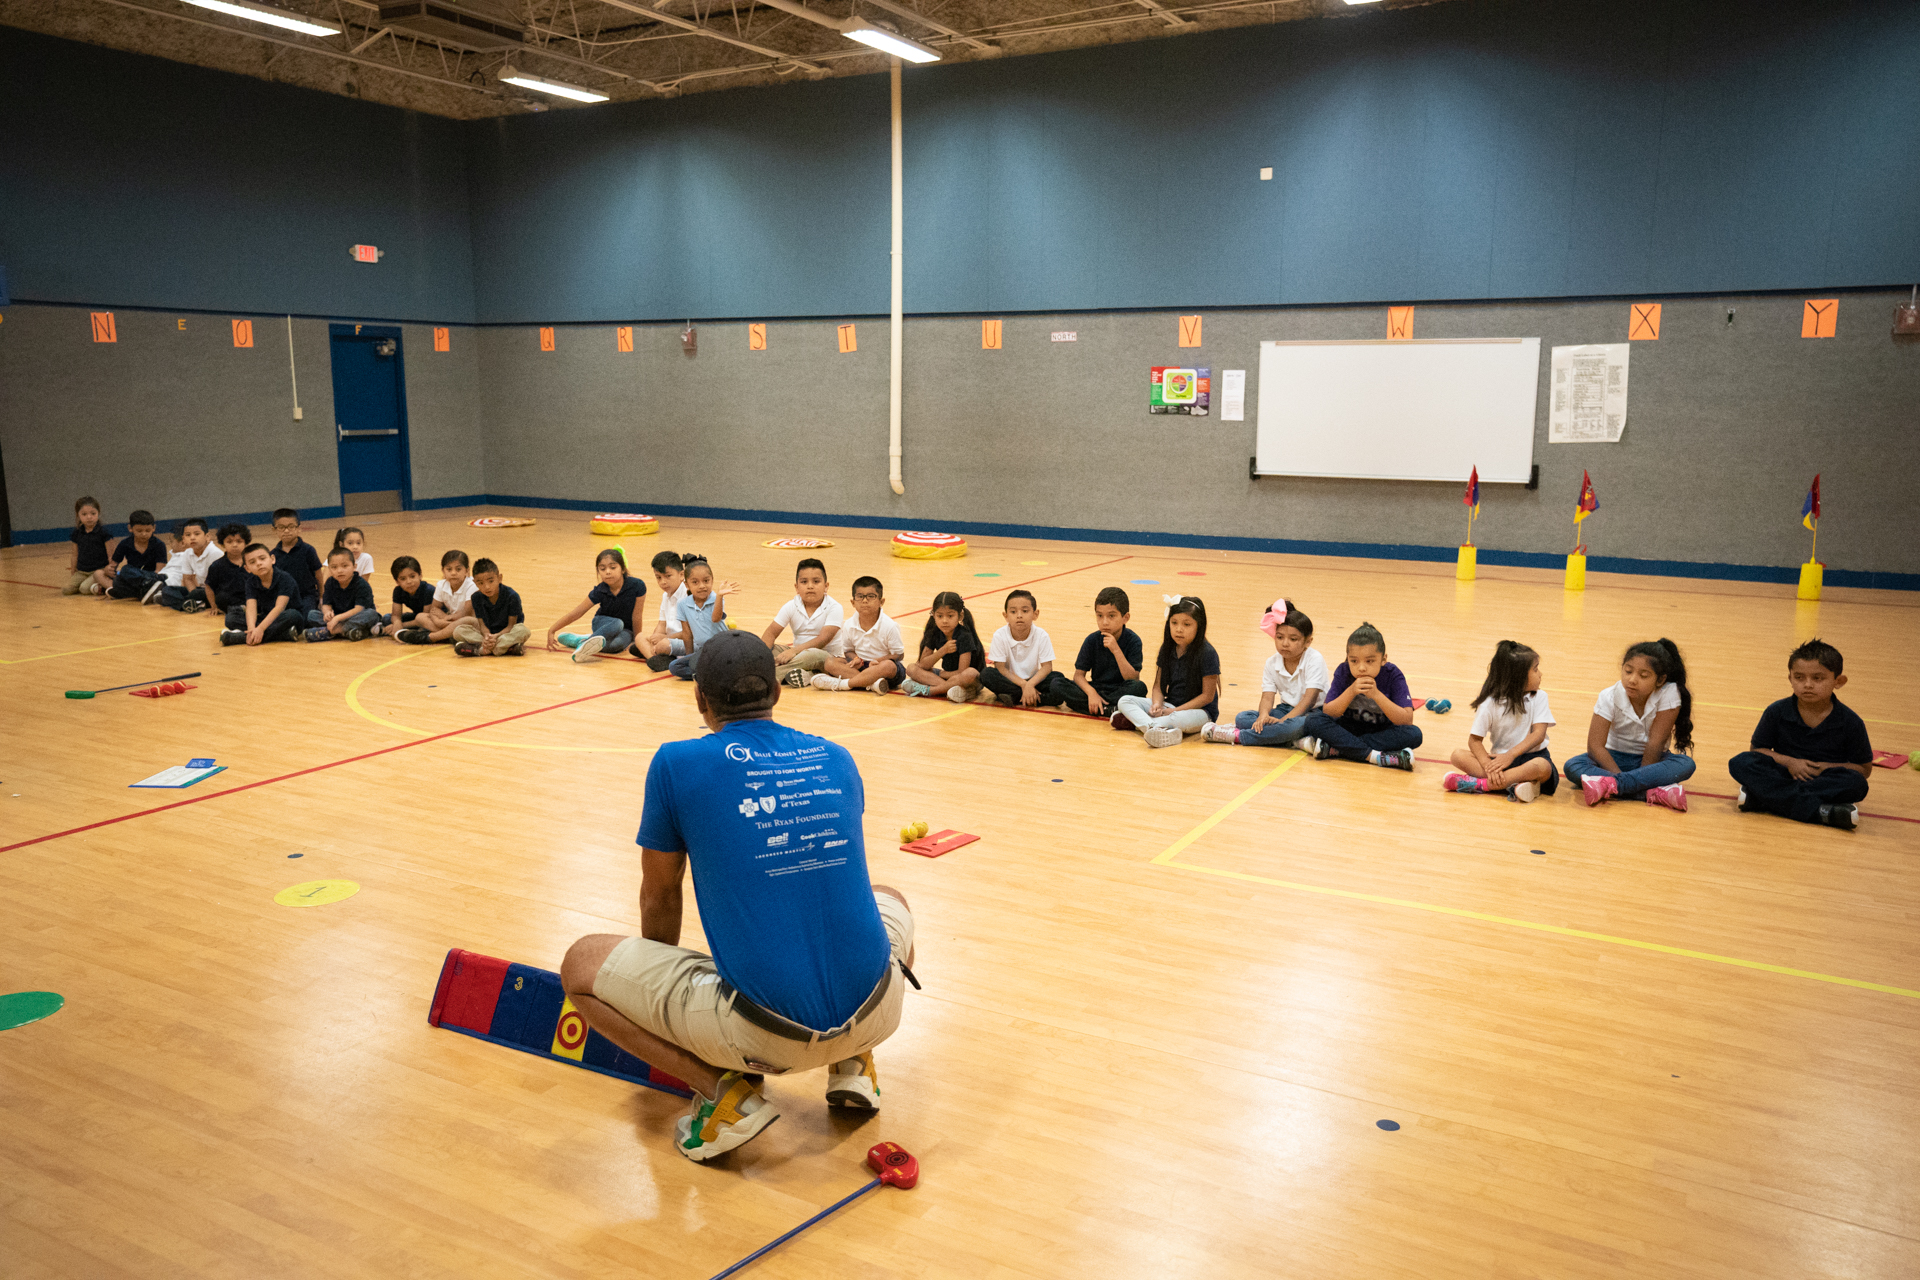 0047_2018-McLain-Sharecare-mid-school-yoga-915.jpg